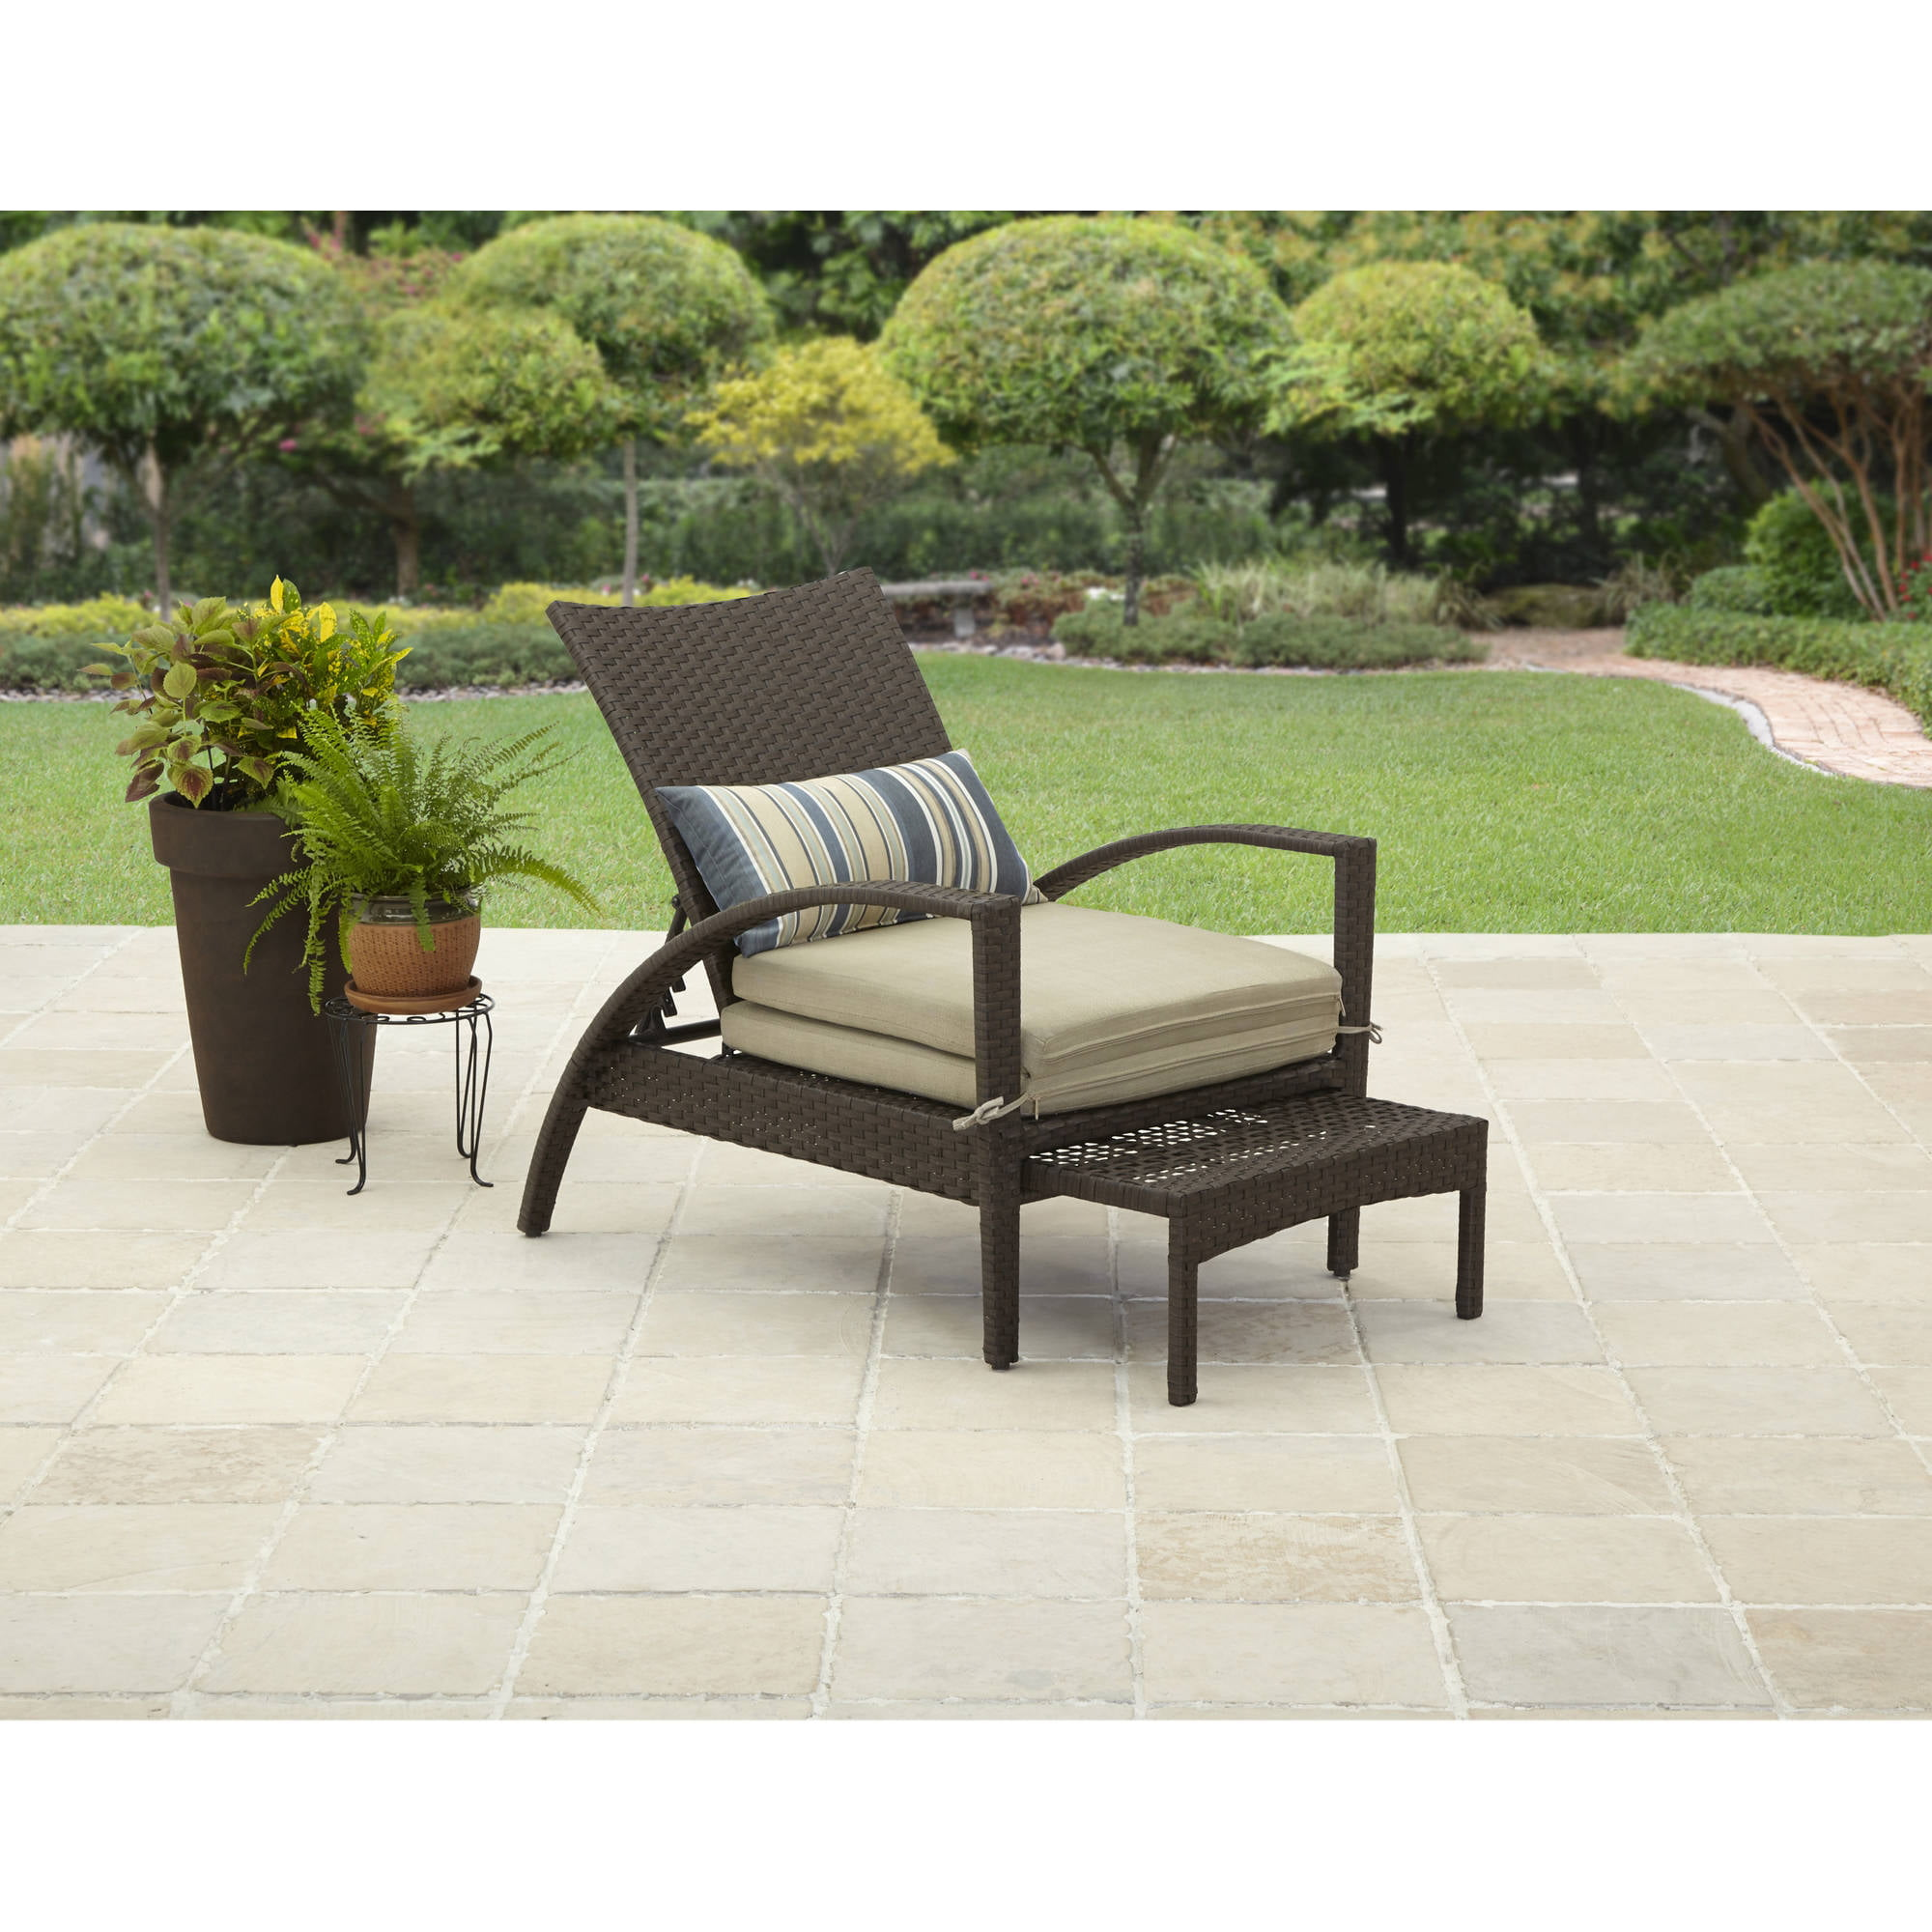 Walmart.com  Apartment Patio Furniture